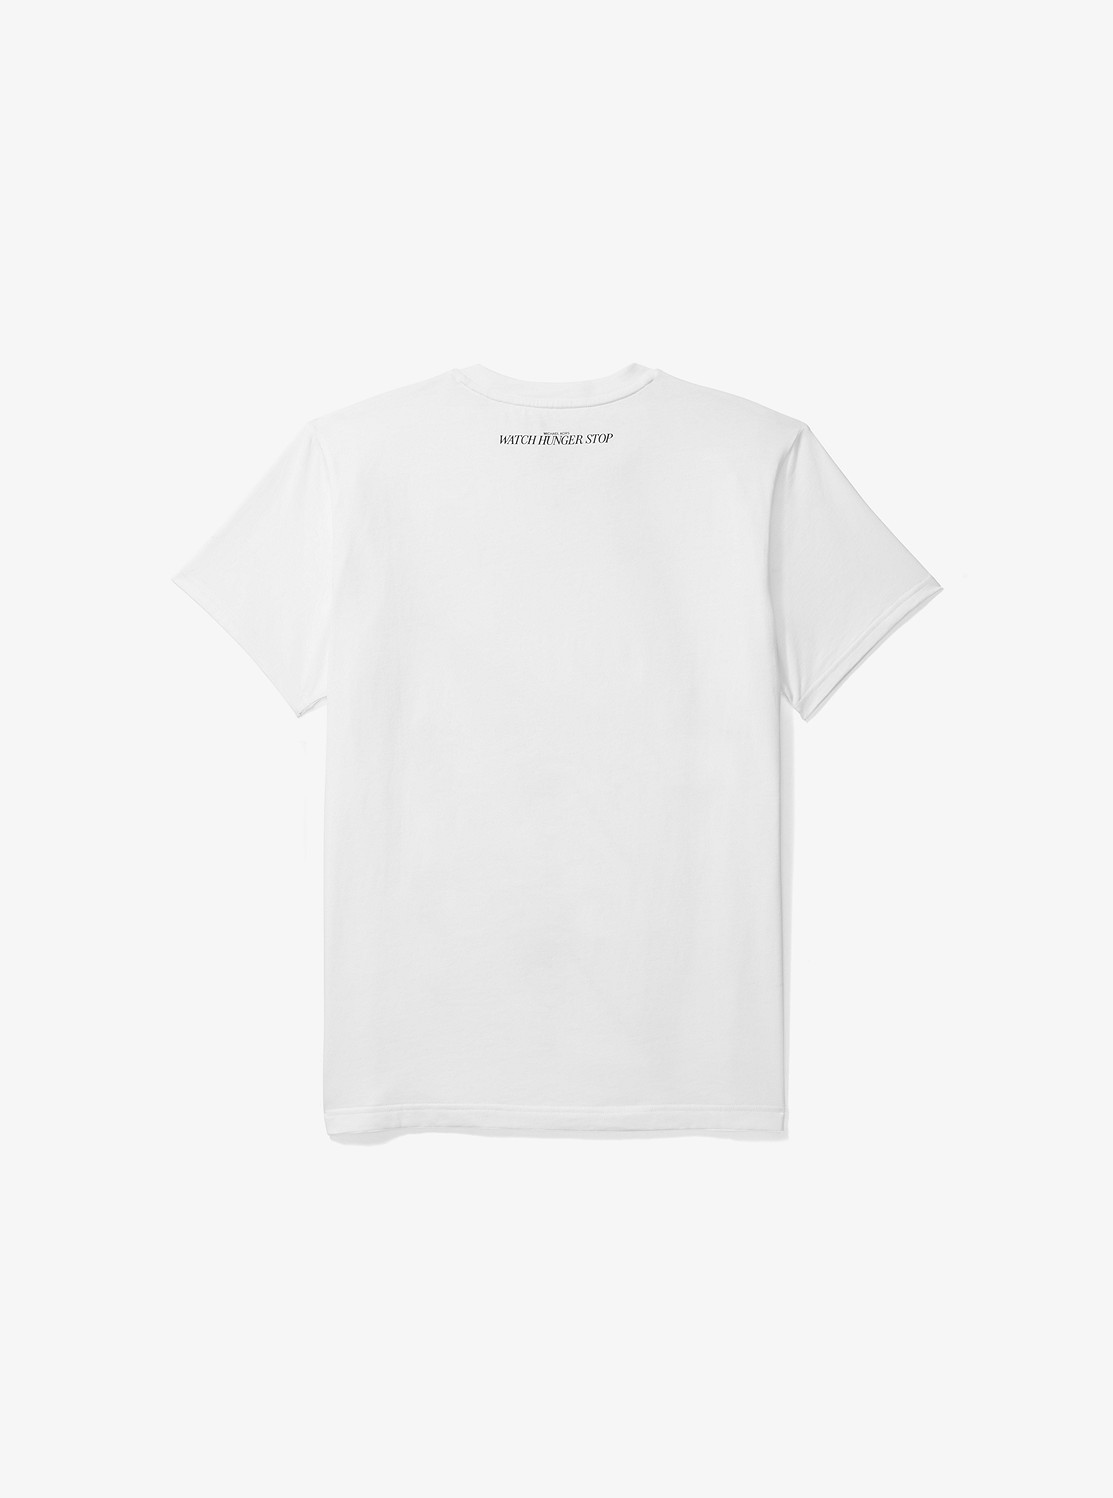 Watch Hunger Stop LOVE Tシャツ - チャリティ